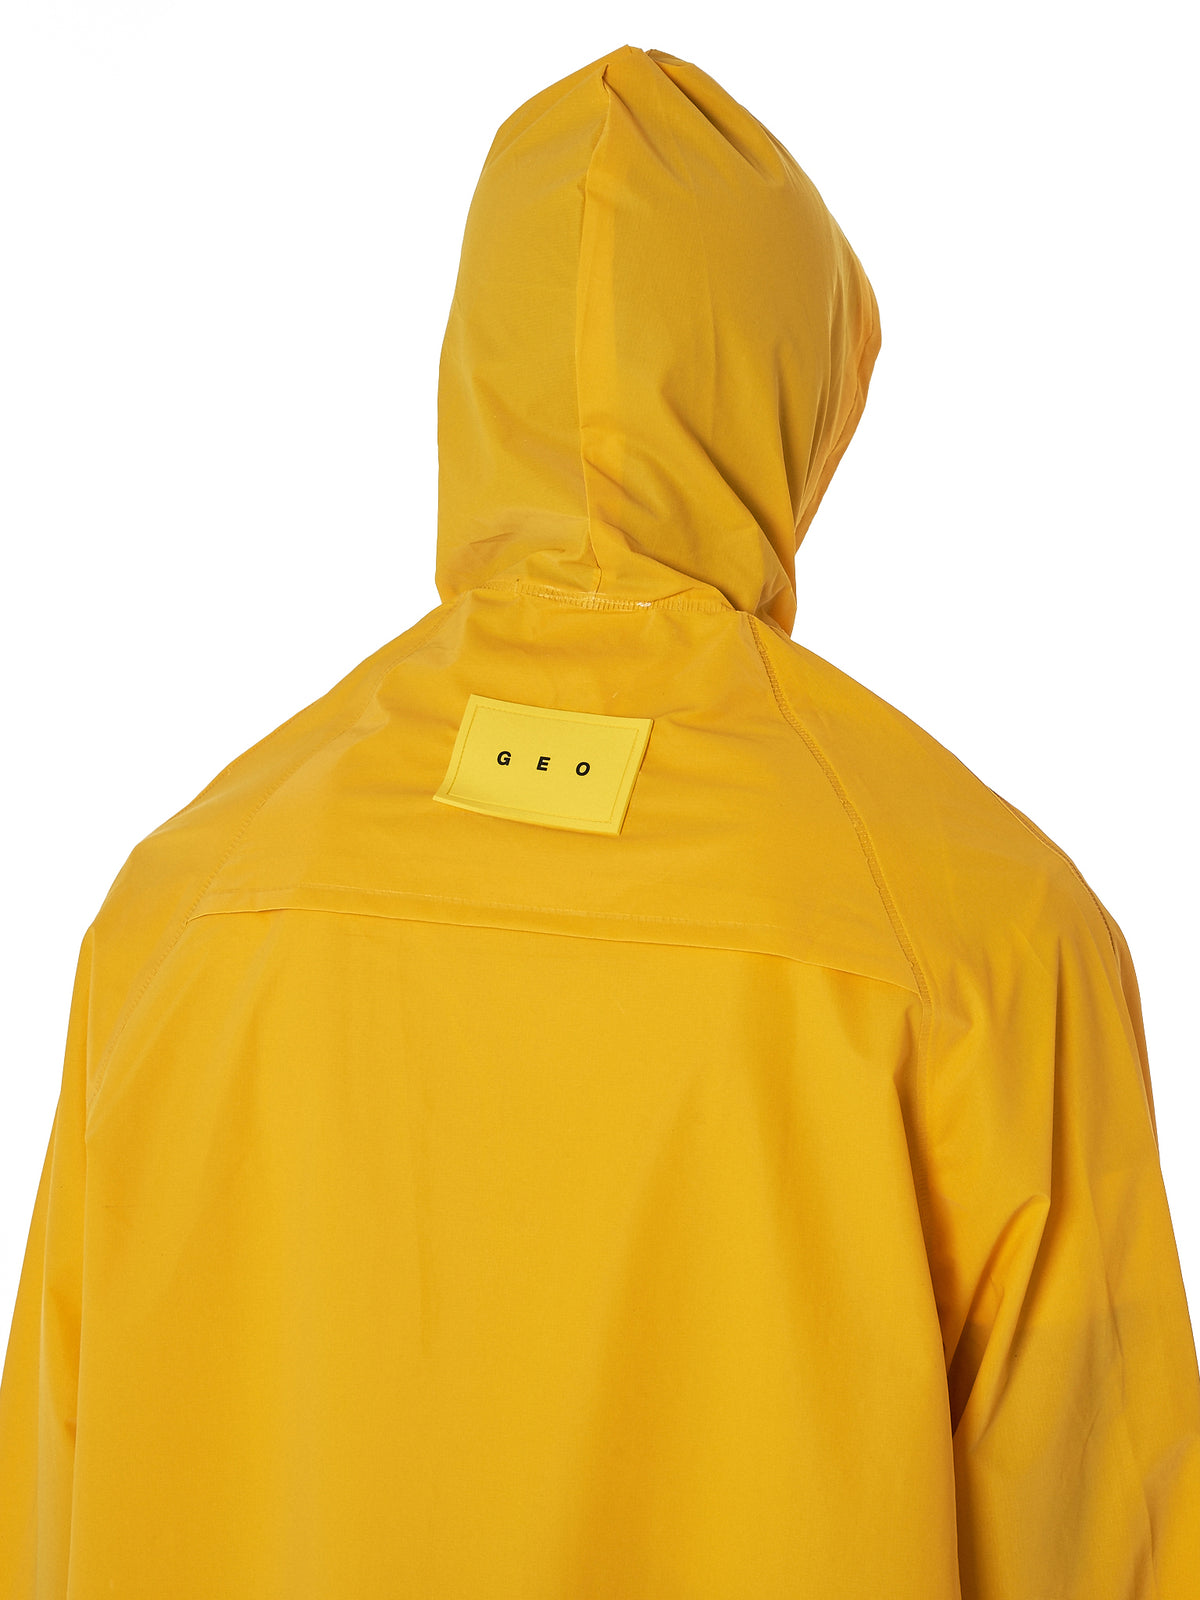 Geo Raincoat - Hlorenzo Detail 2